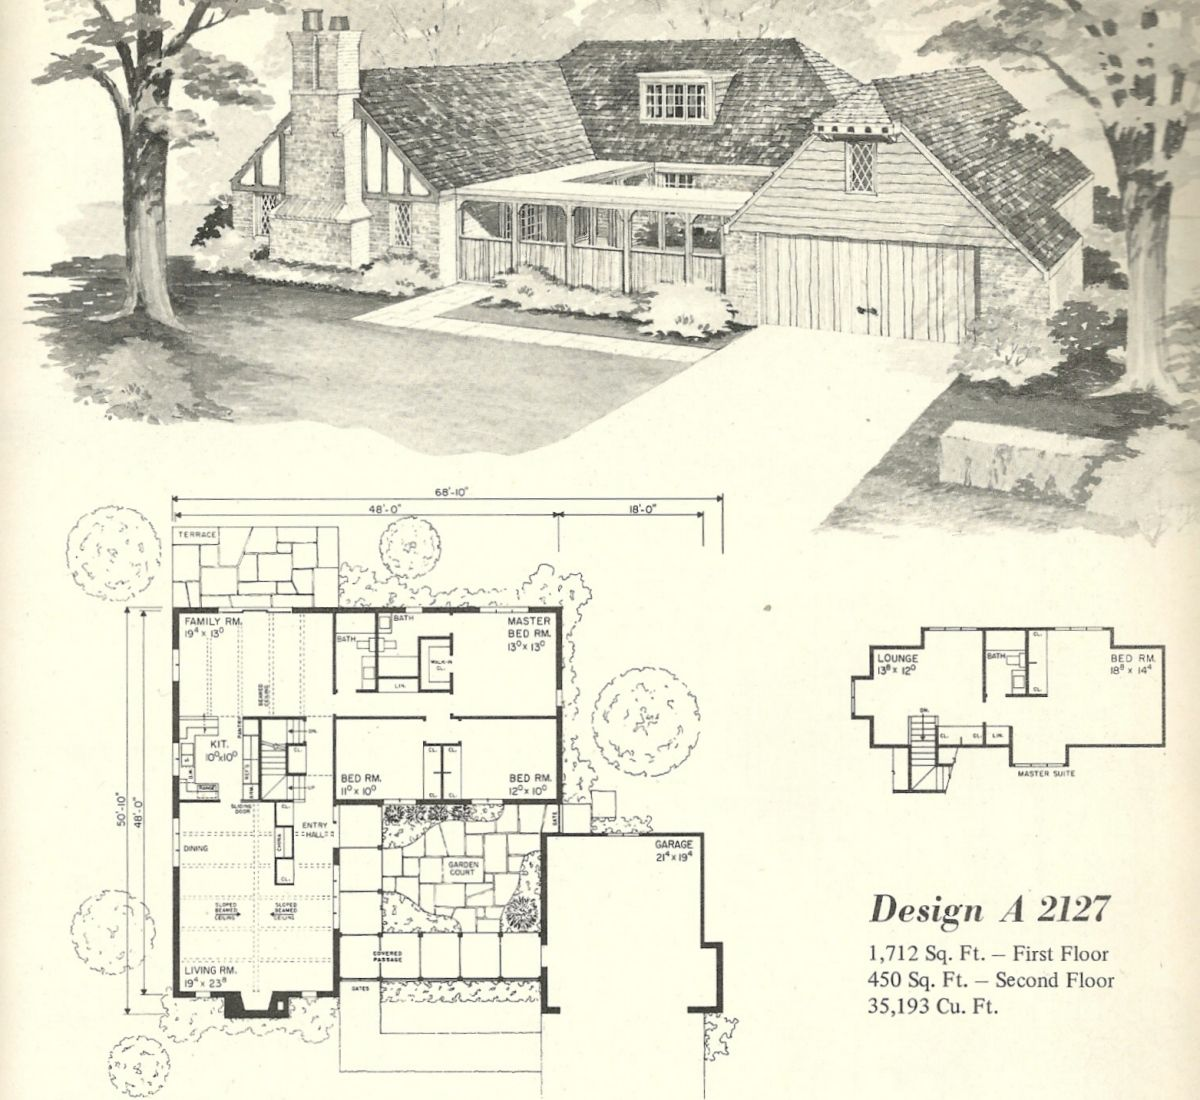 Unique English Tudor House Plans (+9) View | Vintage house ...